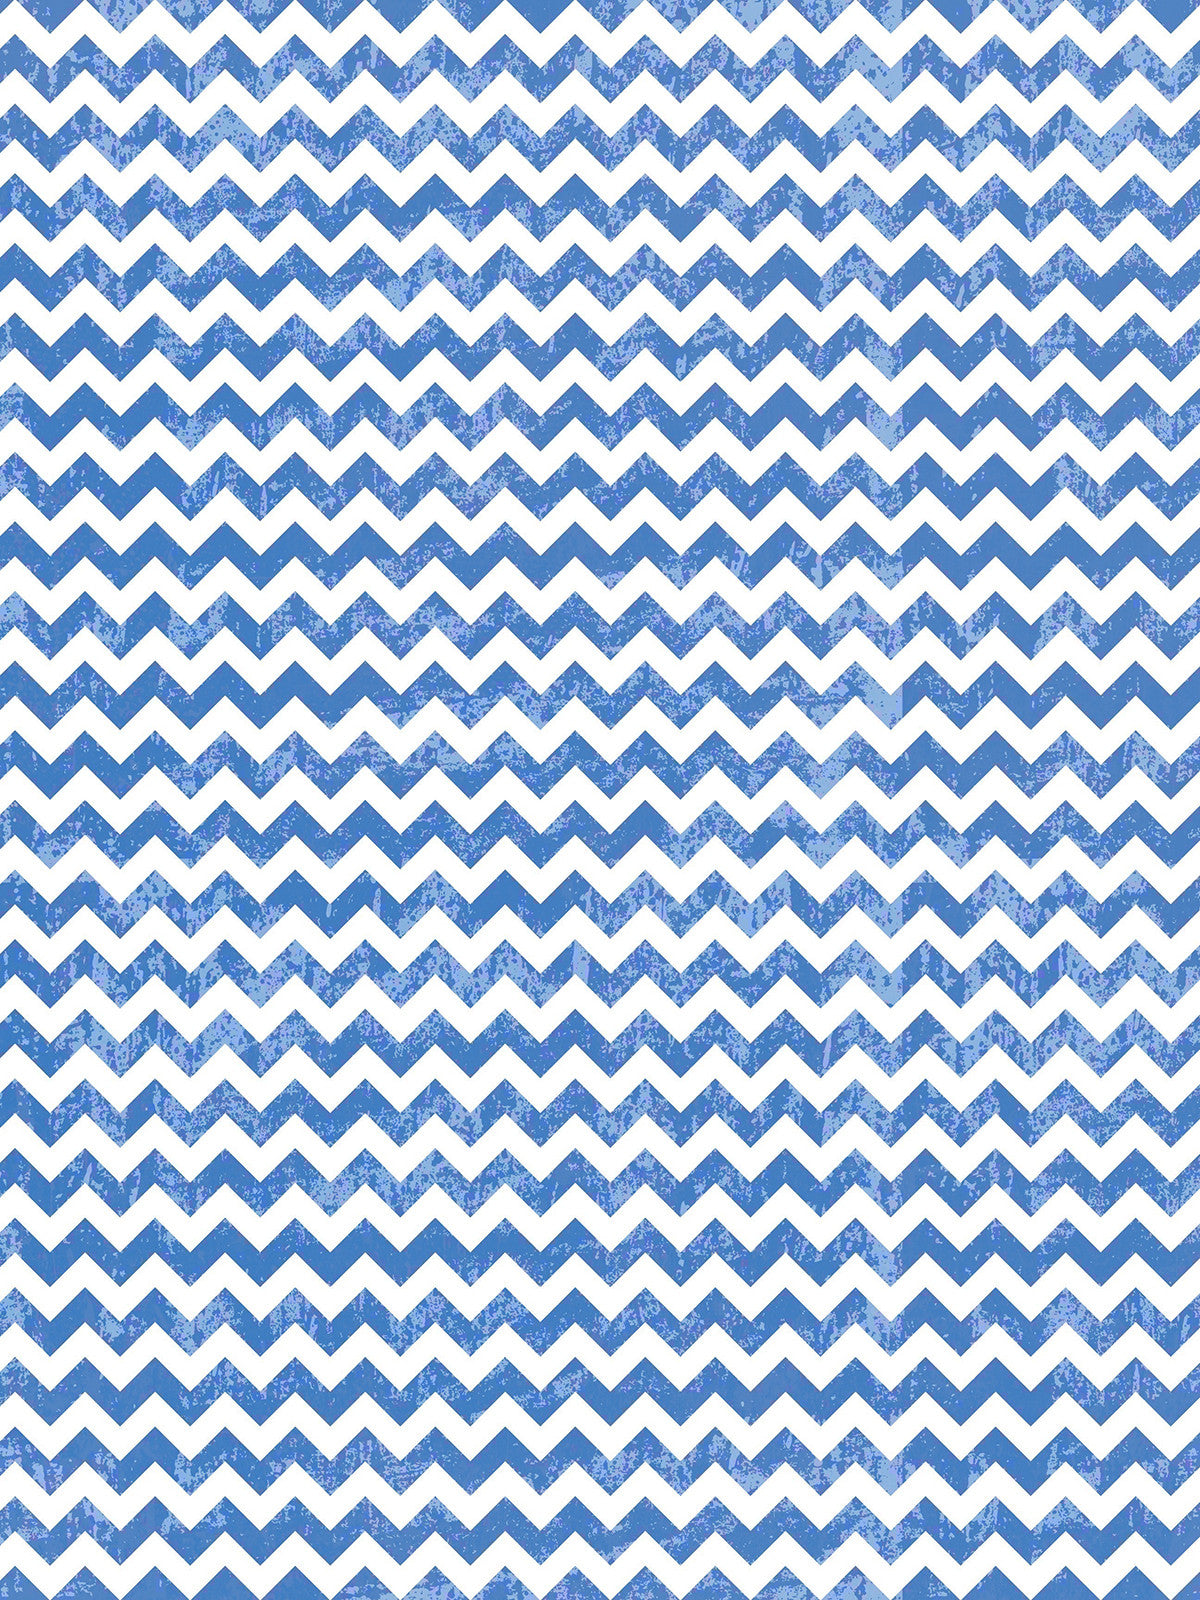 Navy Chevron Printed Photo Background / 9810 - DropPlace